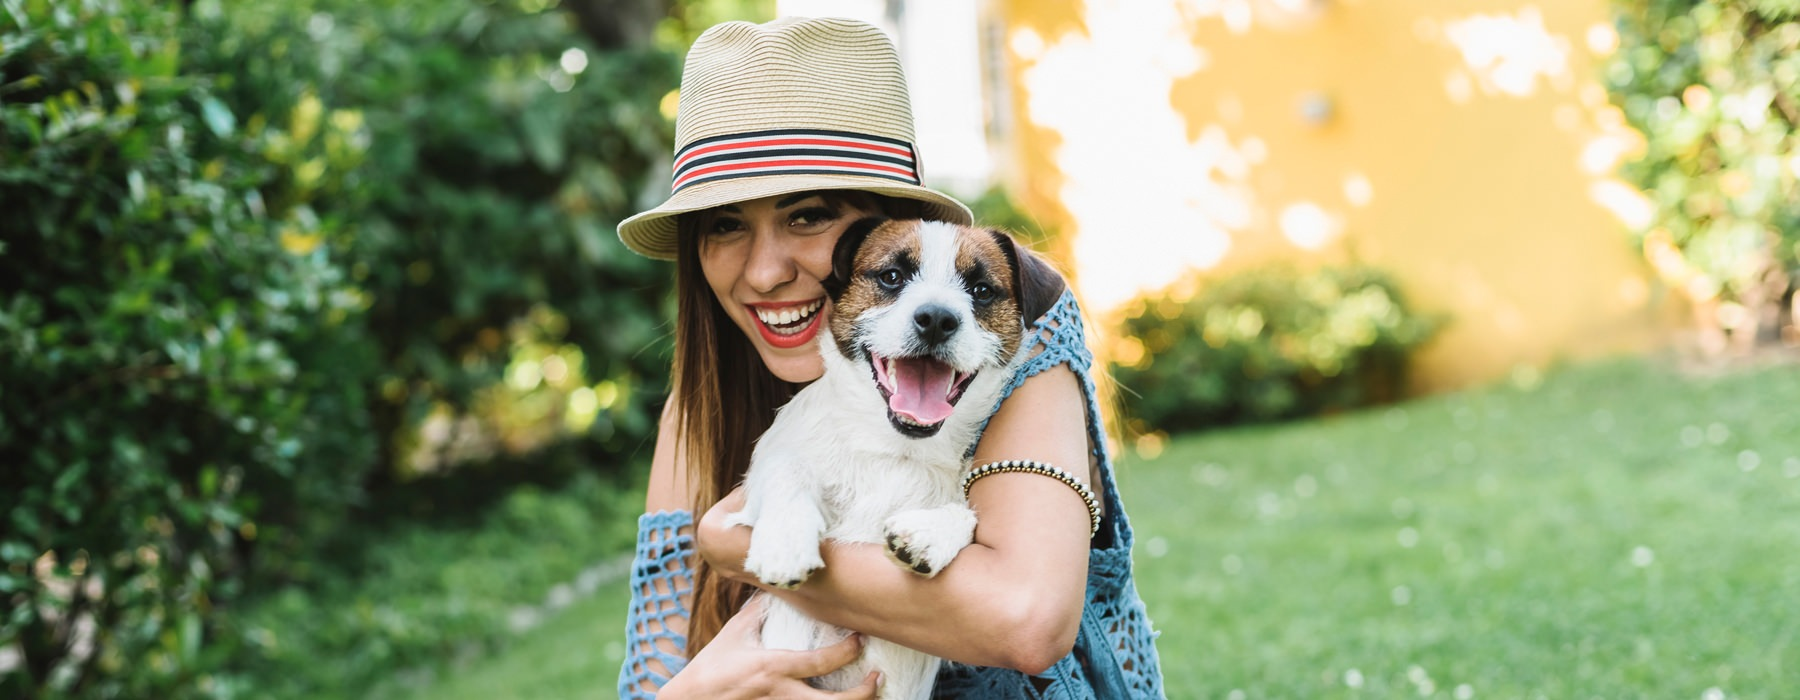 Lifestyle Image of young woman with her dog in a park